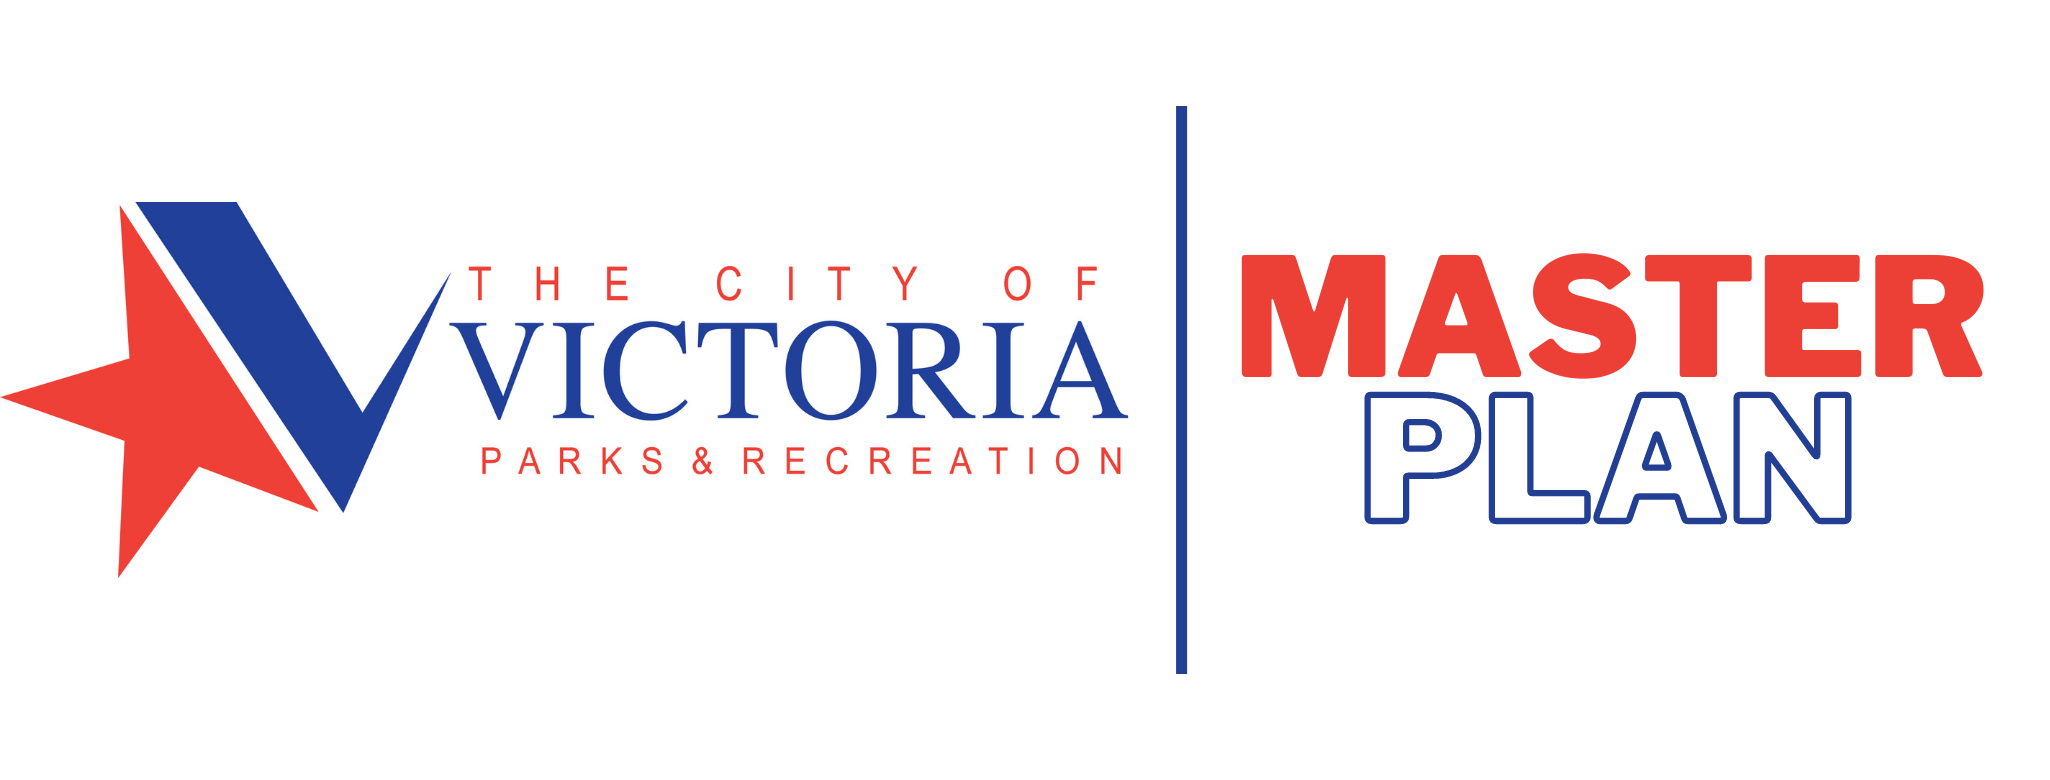 City of Victoria Parks and Recreation Master Plan